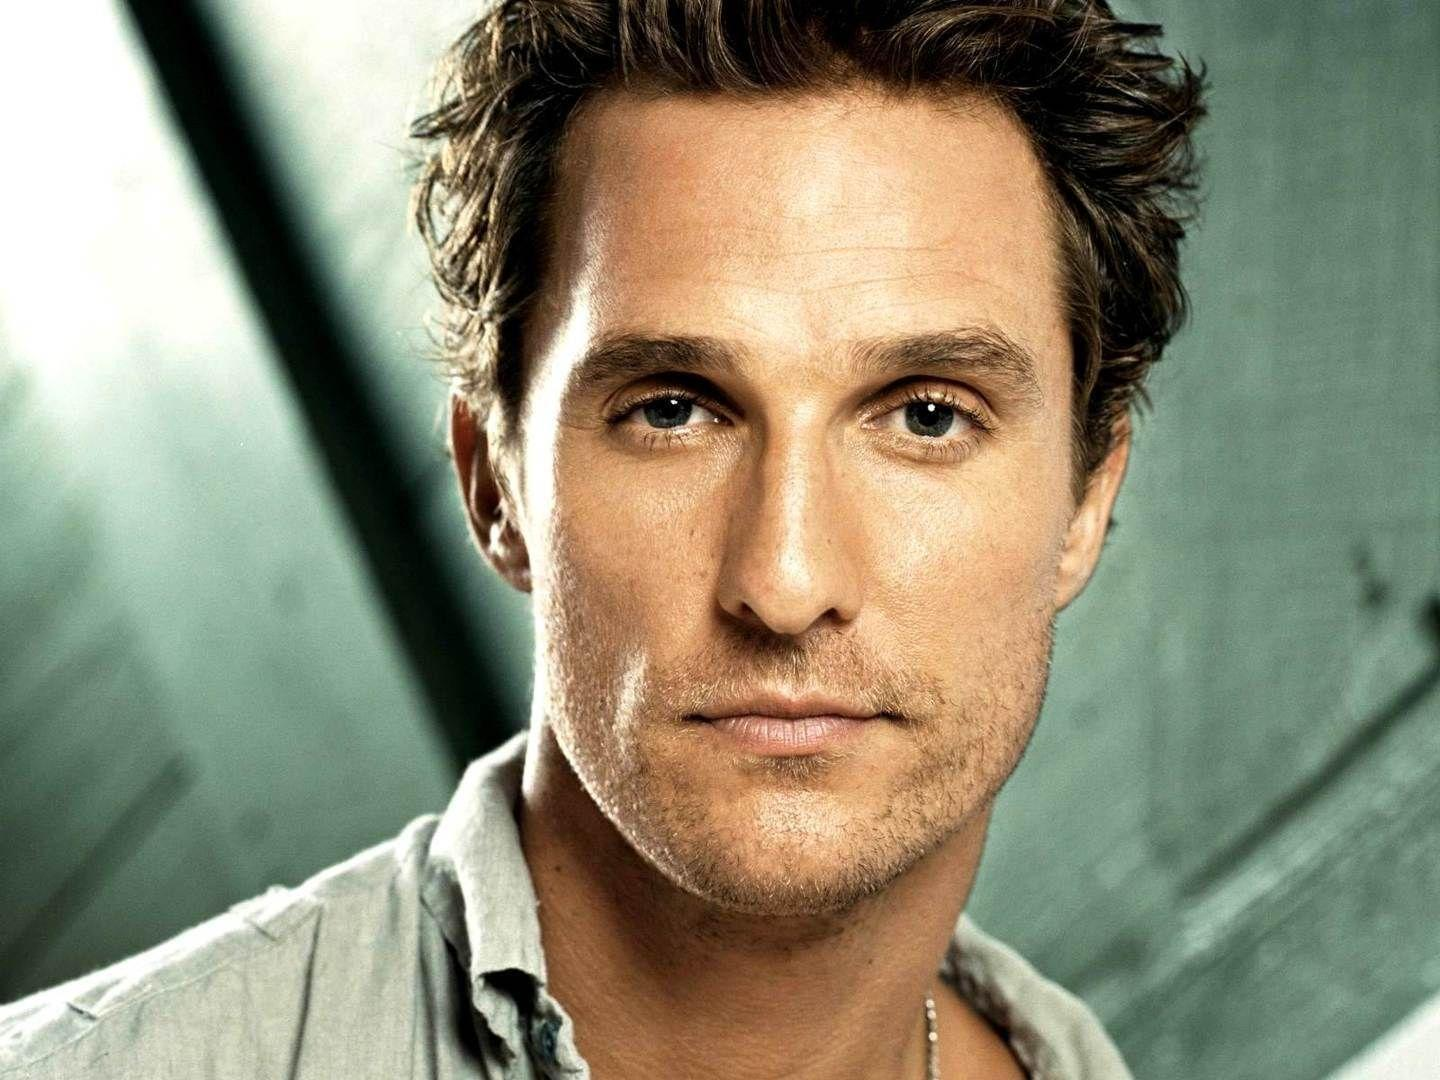 matthew mcconaughey Wallpapers HD Wallpapers